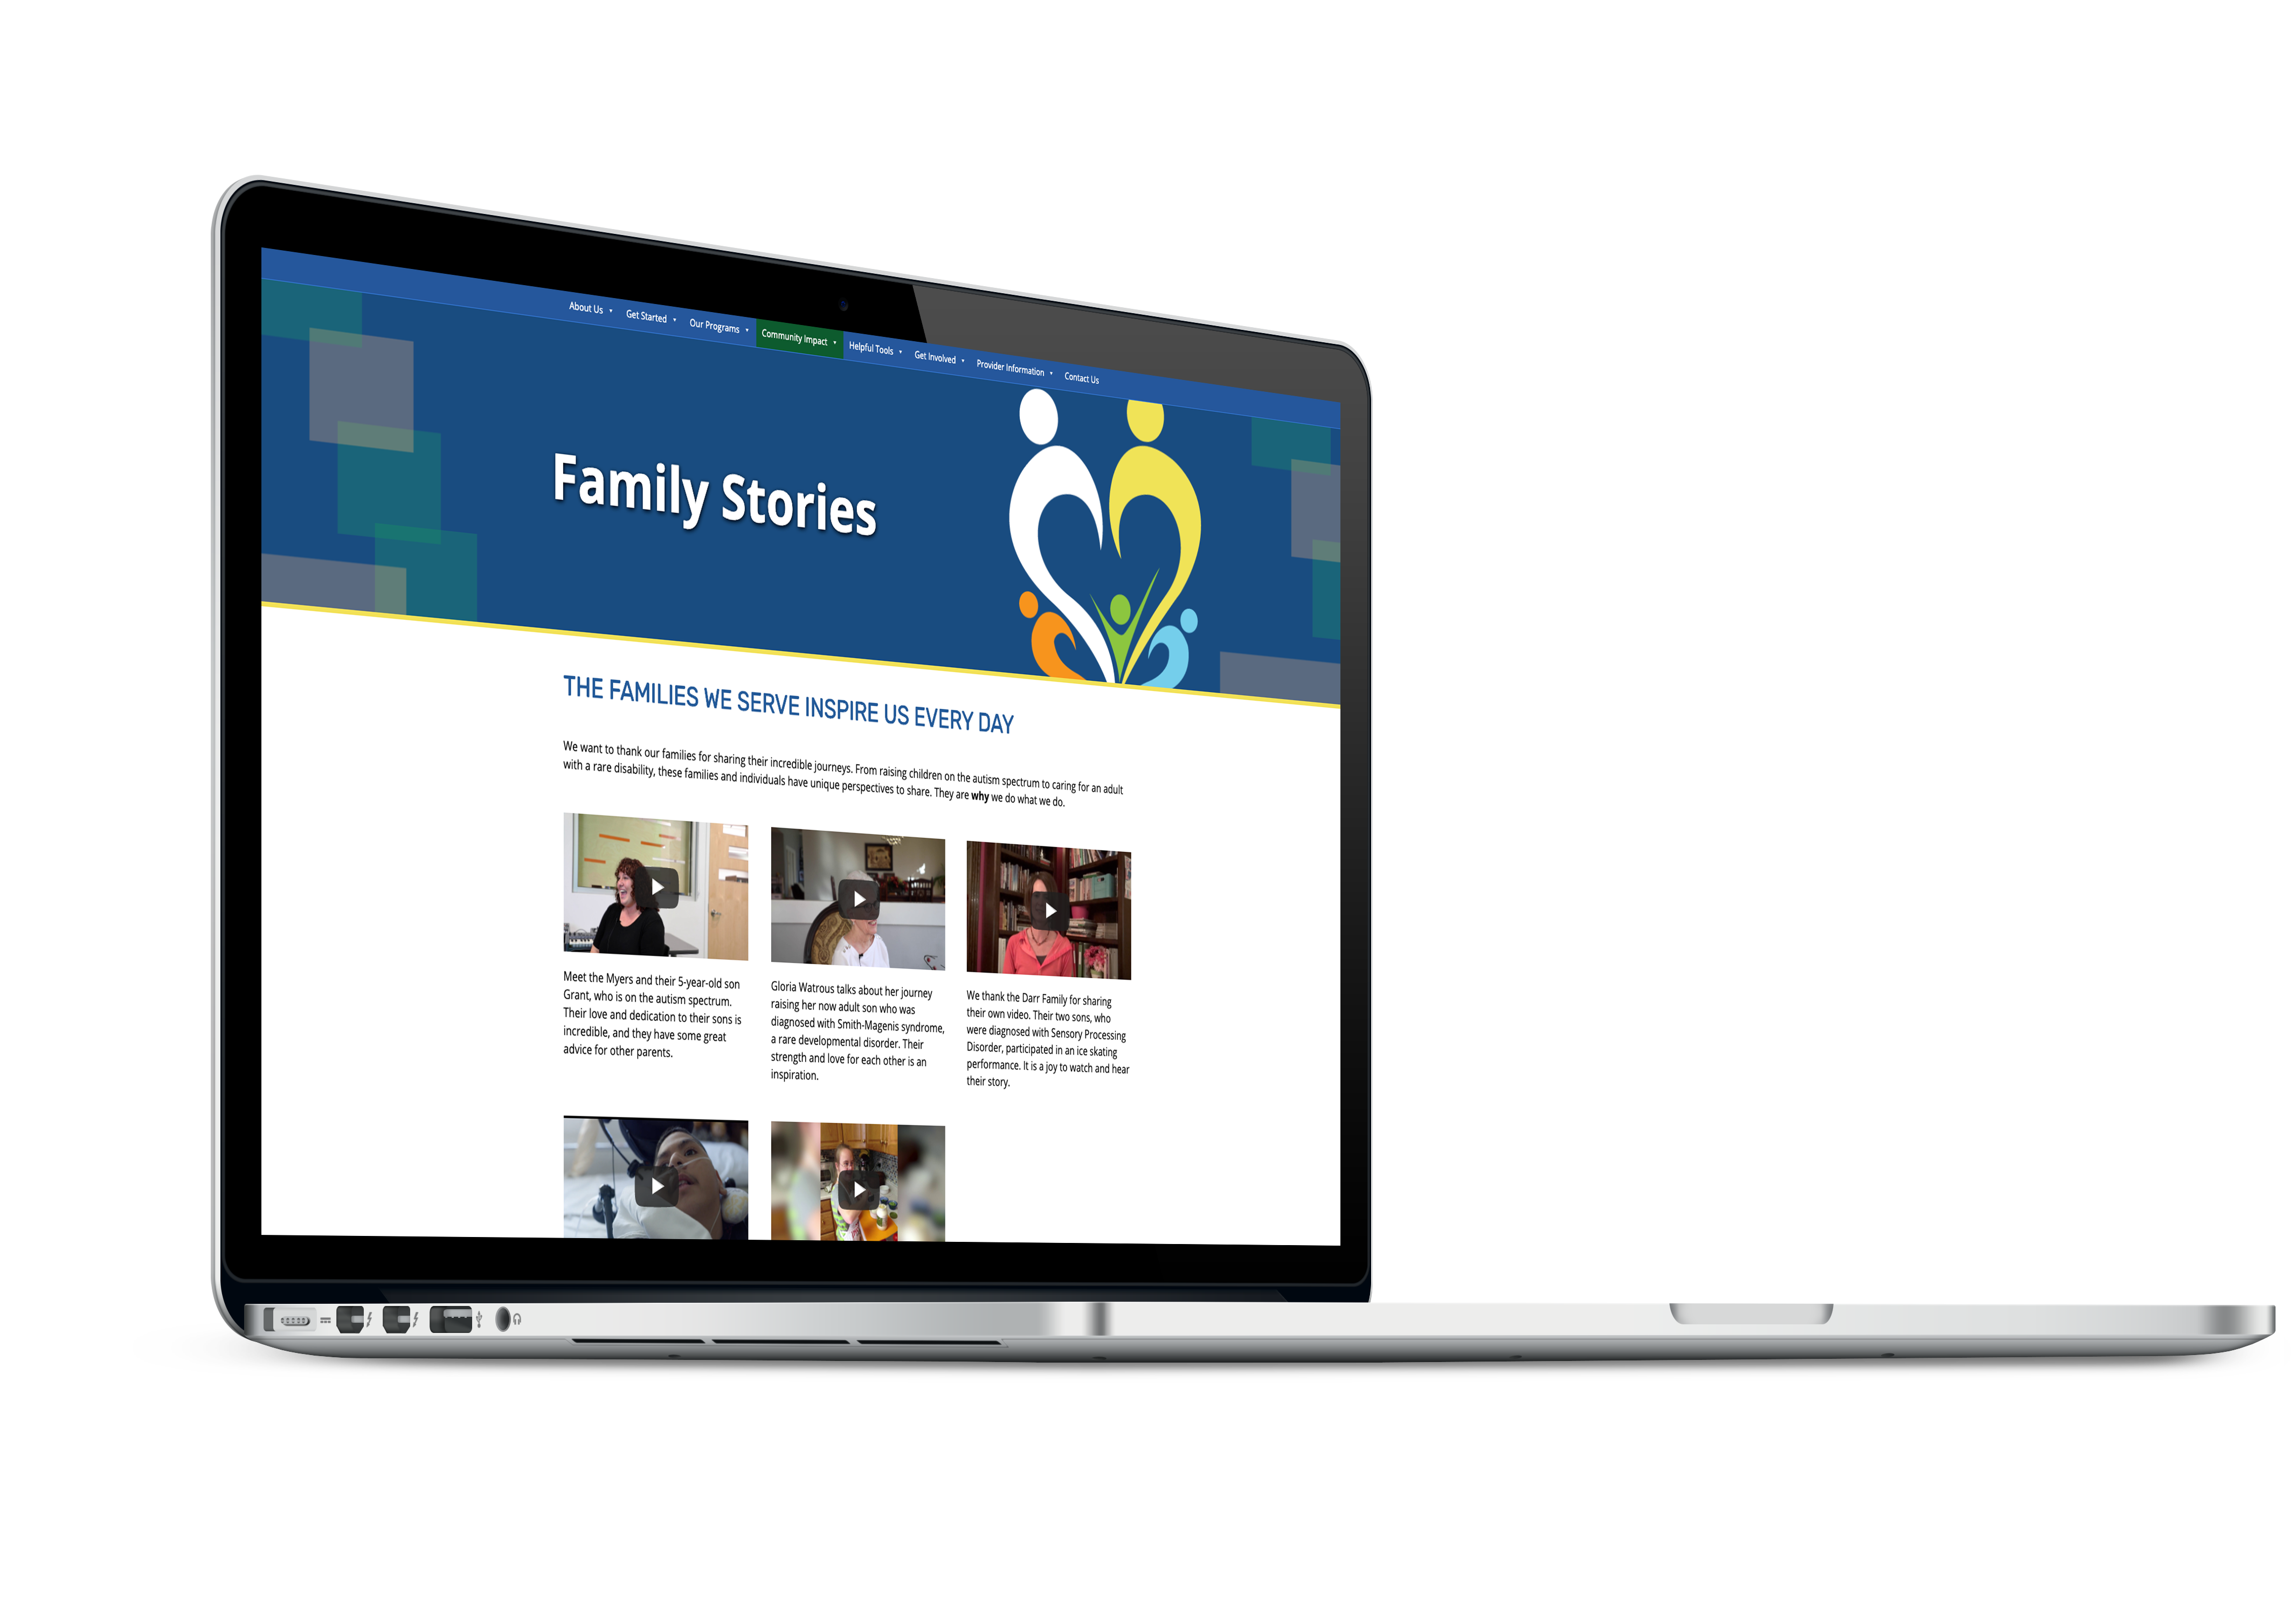 Family Stories page link